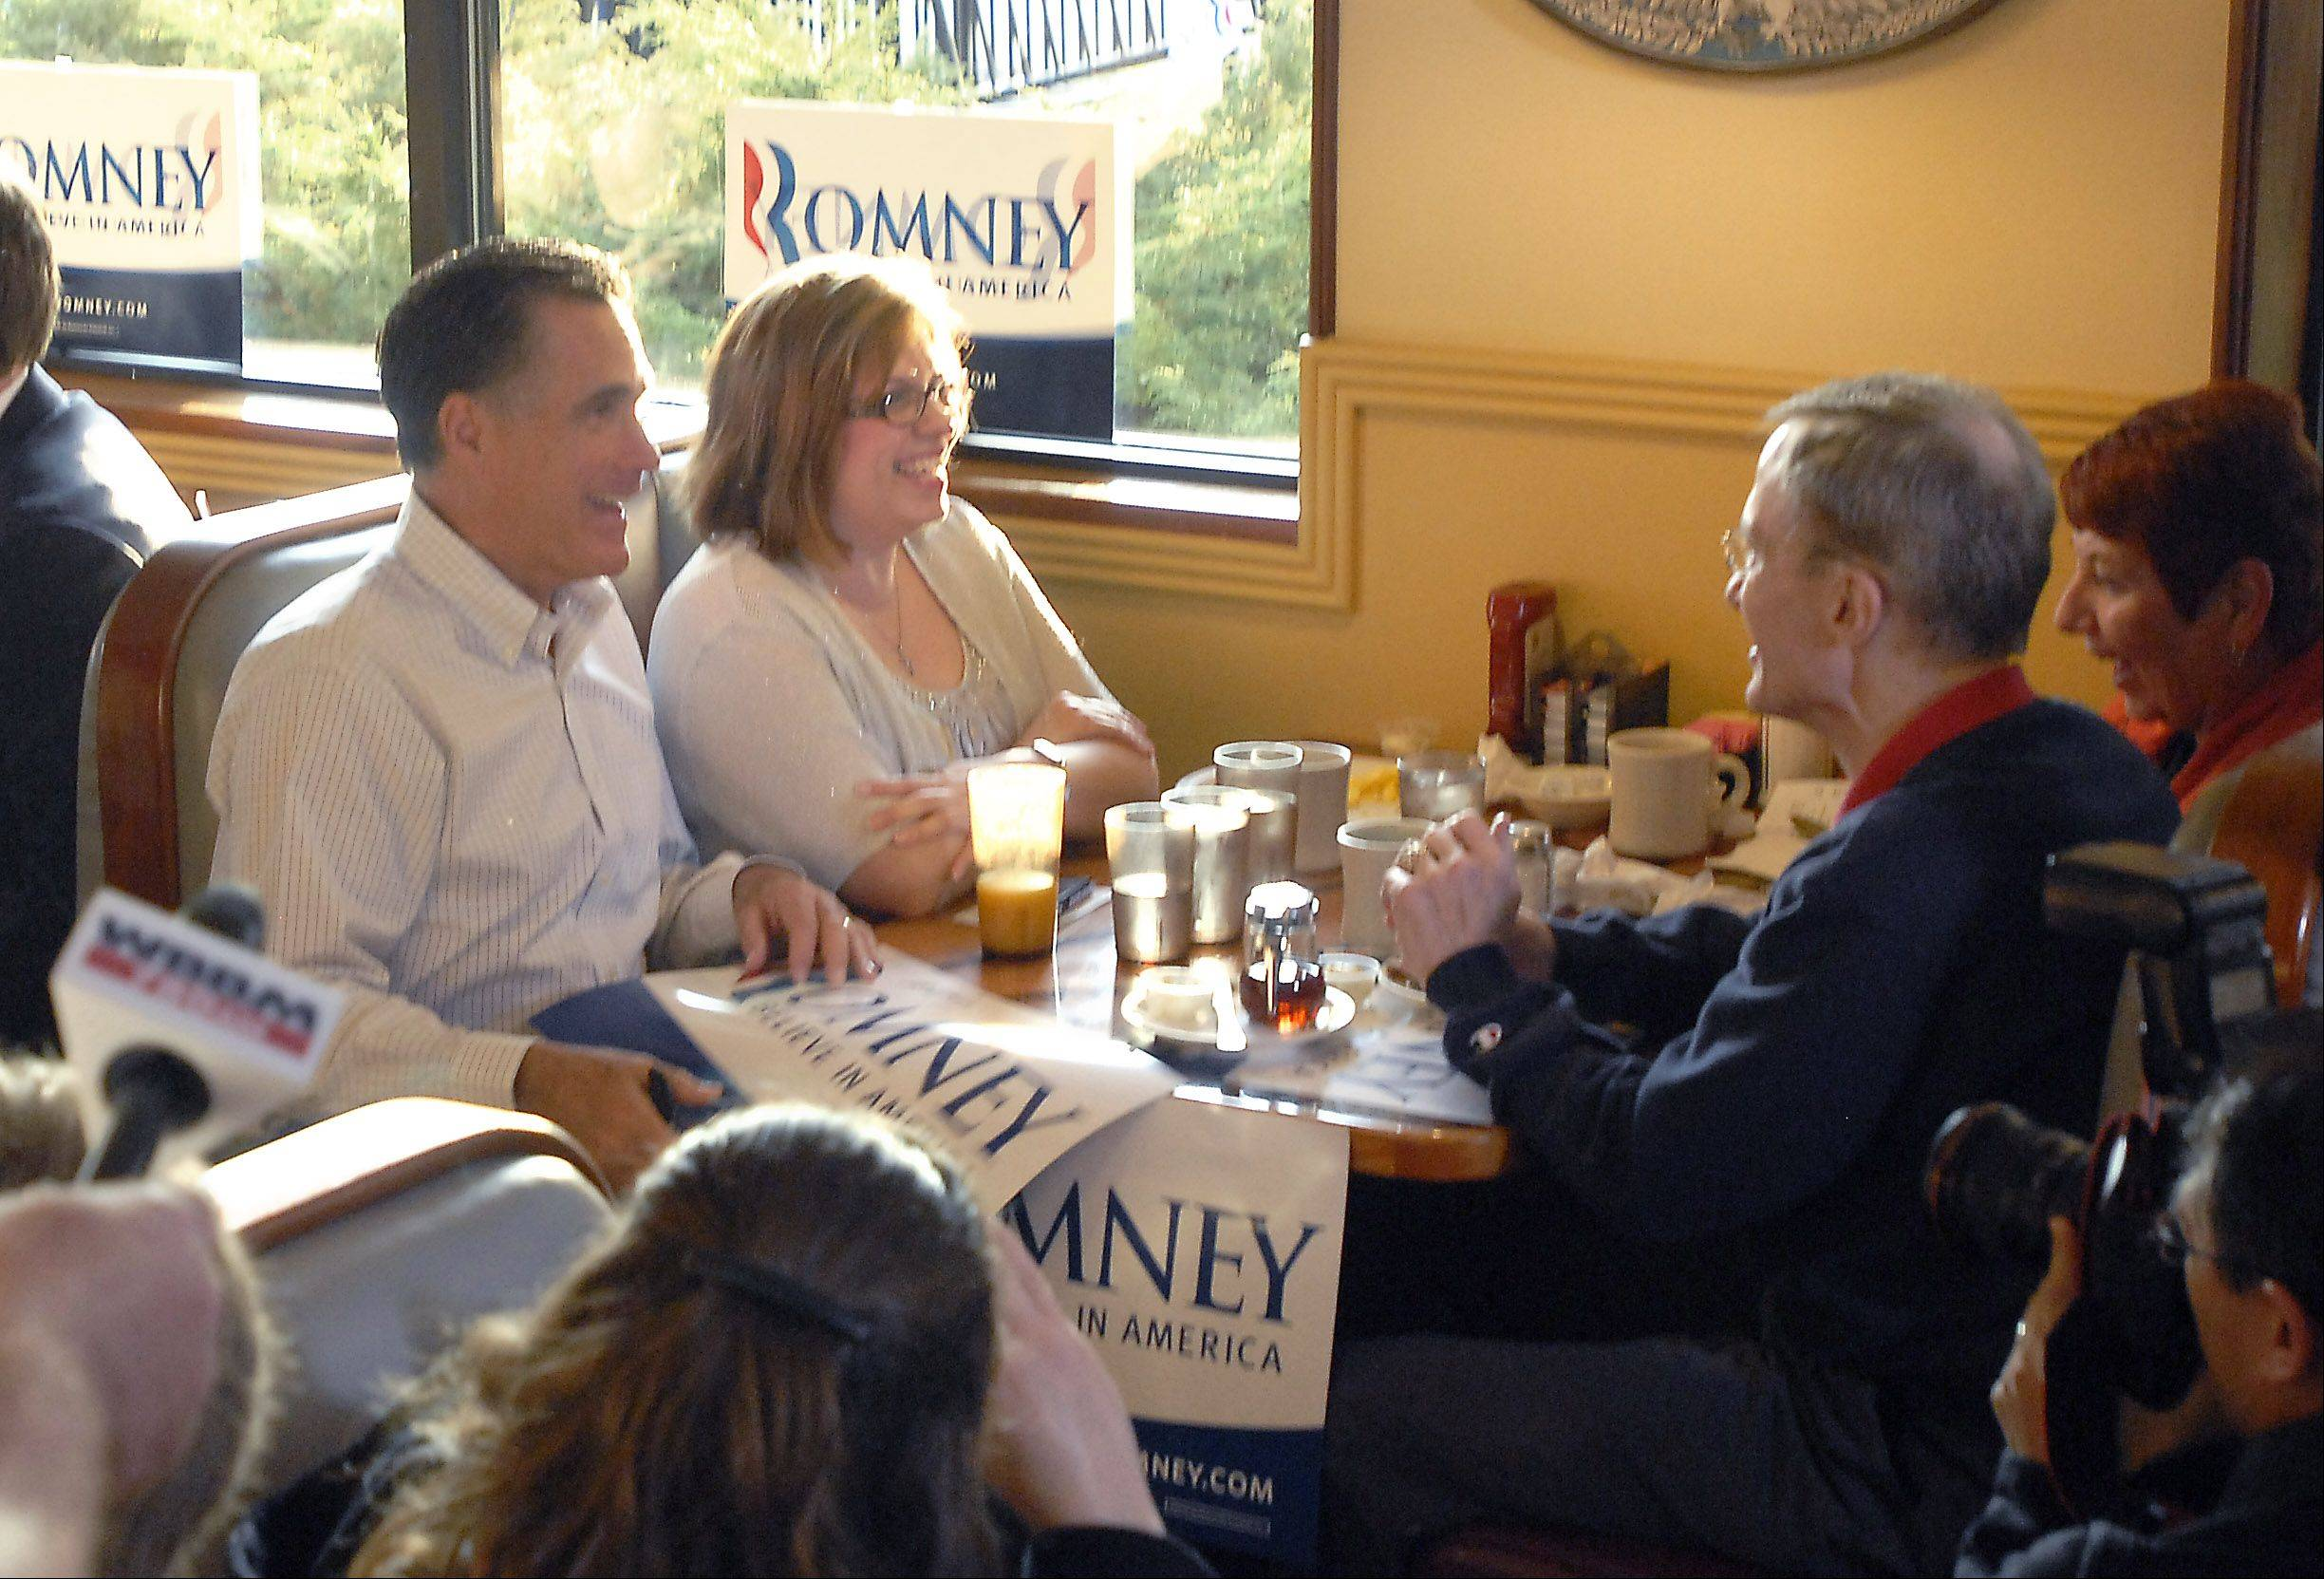 Republican presidential candidate Mitt Romney sits down with supporters early Friday morning at a restaurant in Rosemont.